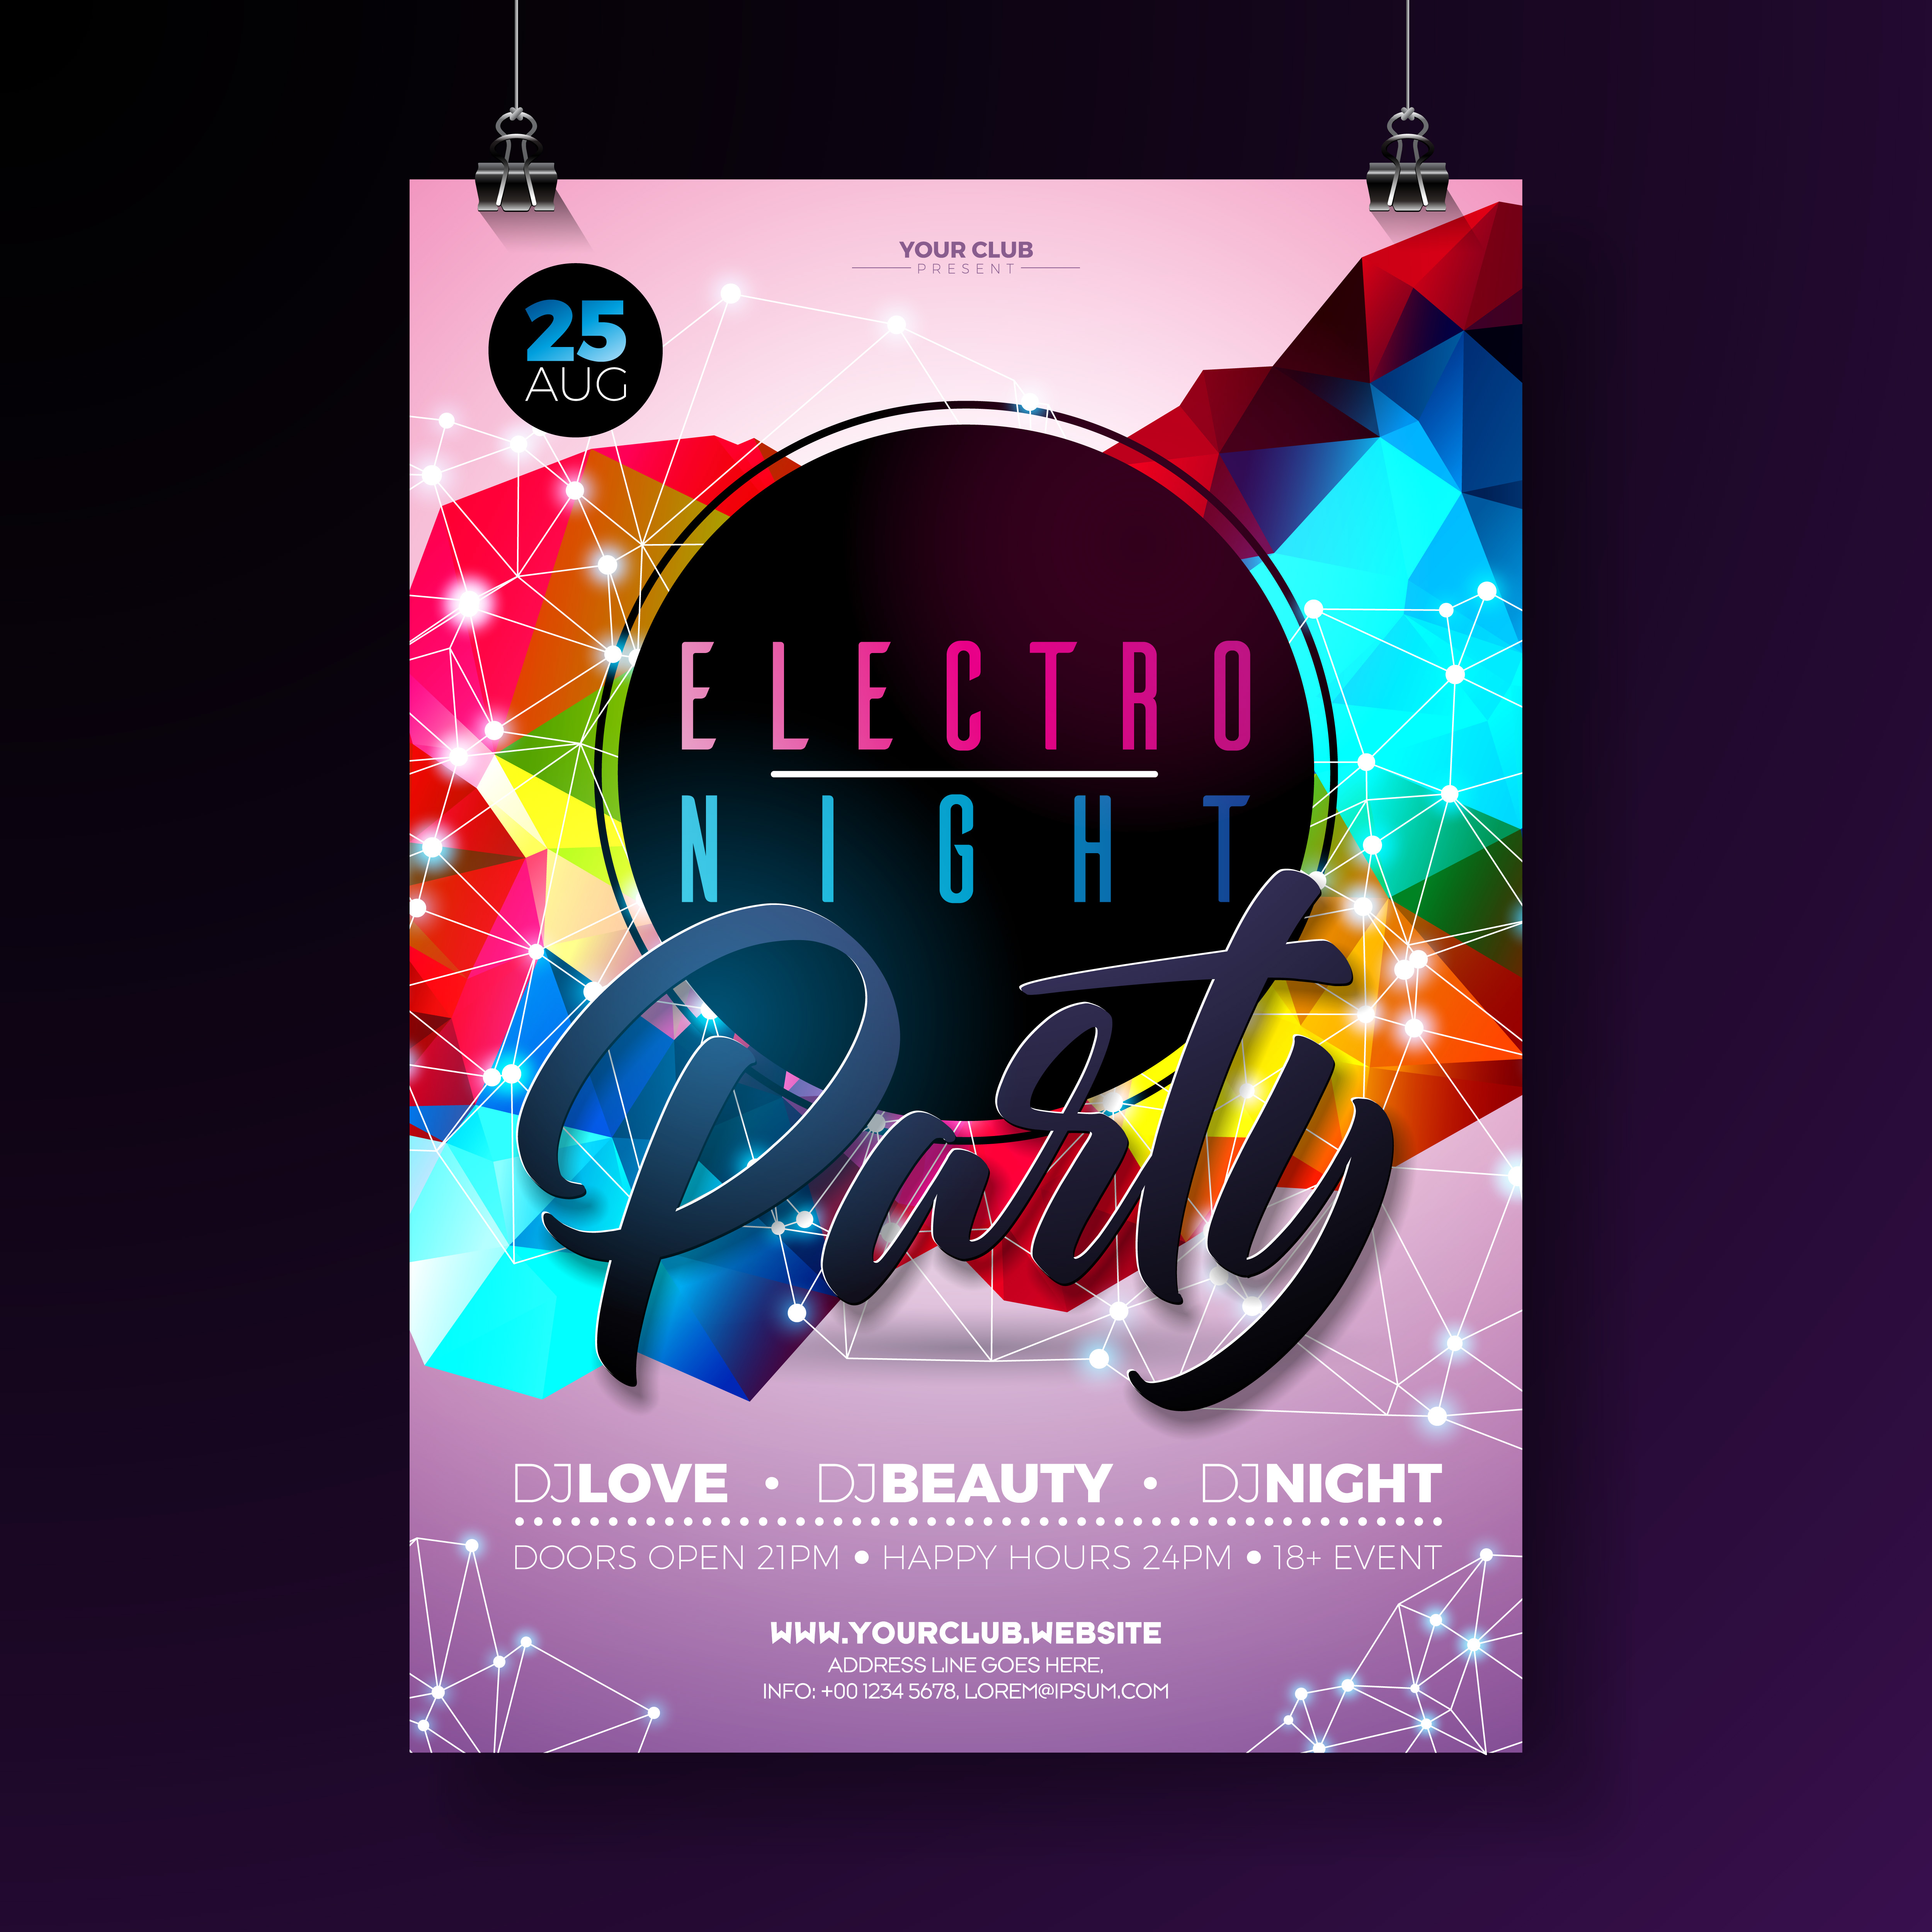 Night Dance Party Poster Design With Abstract Modern Geometric Shapes On Shiny Background Electro Style Disco Club Template For Abstract Music Event Flyer Invitation Or Promotional Banner Download Free Vectors Clipart